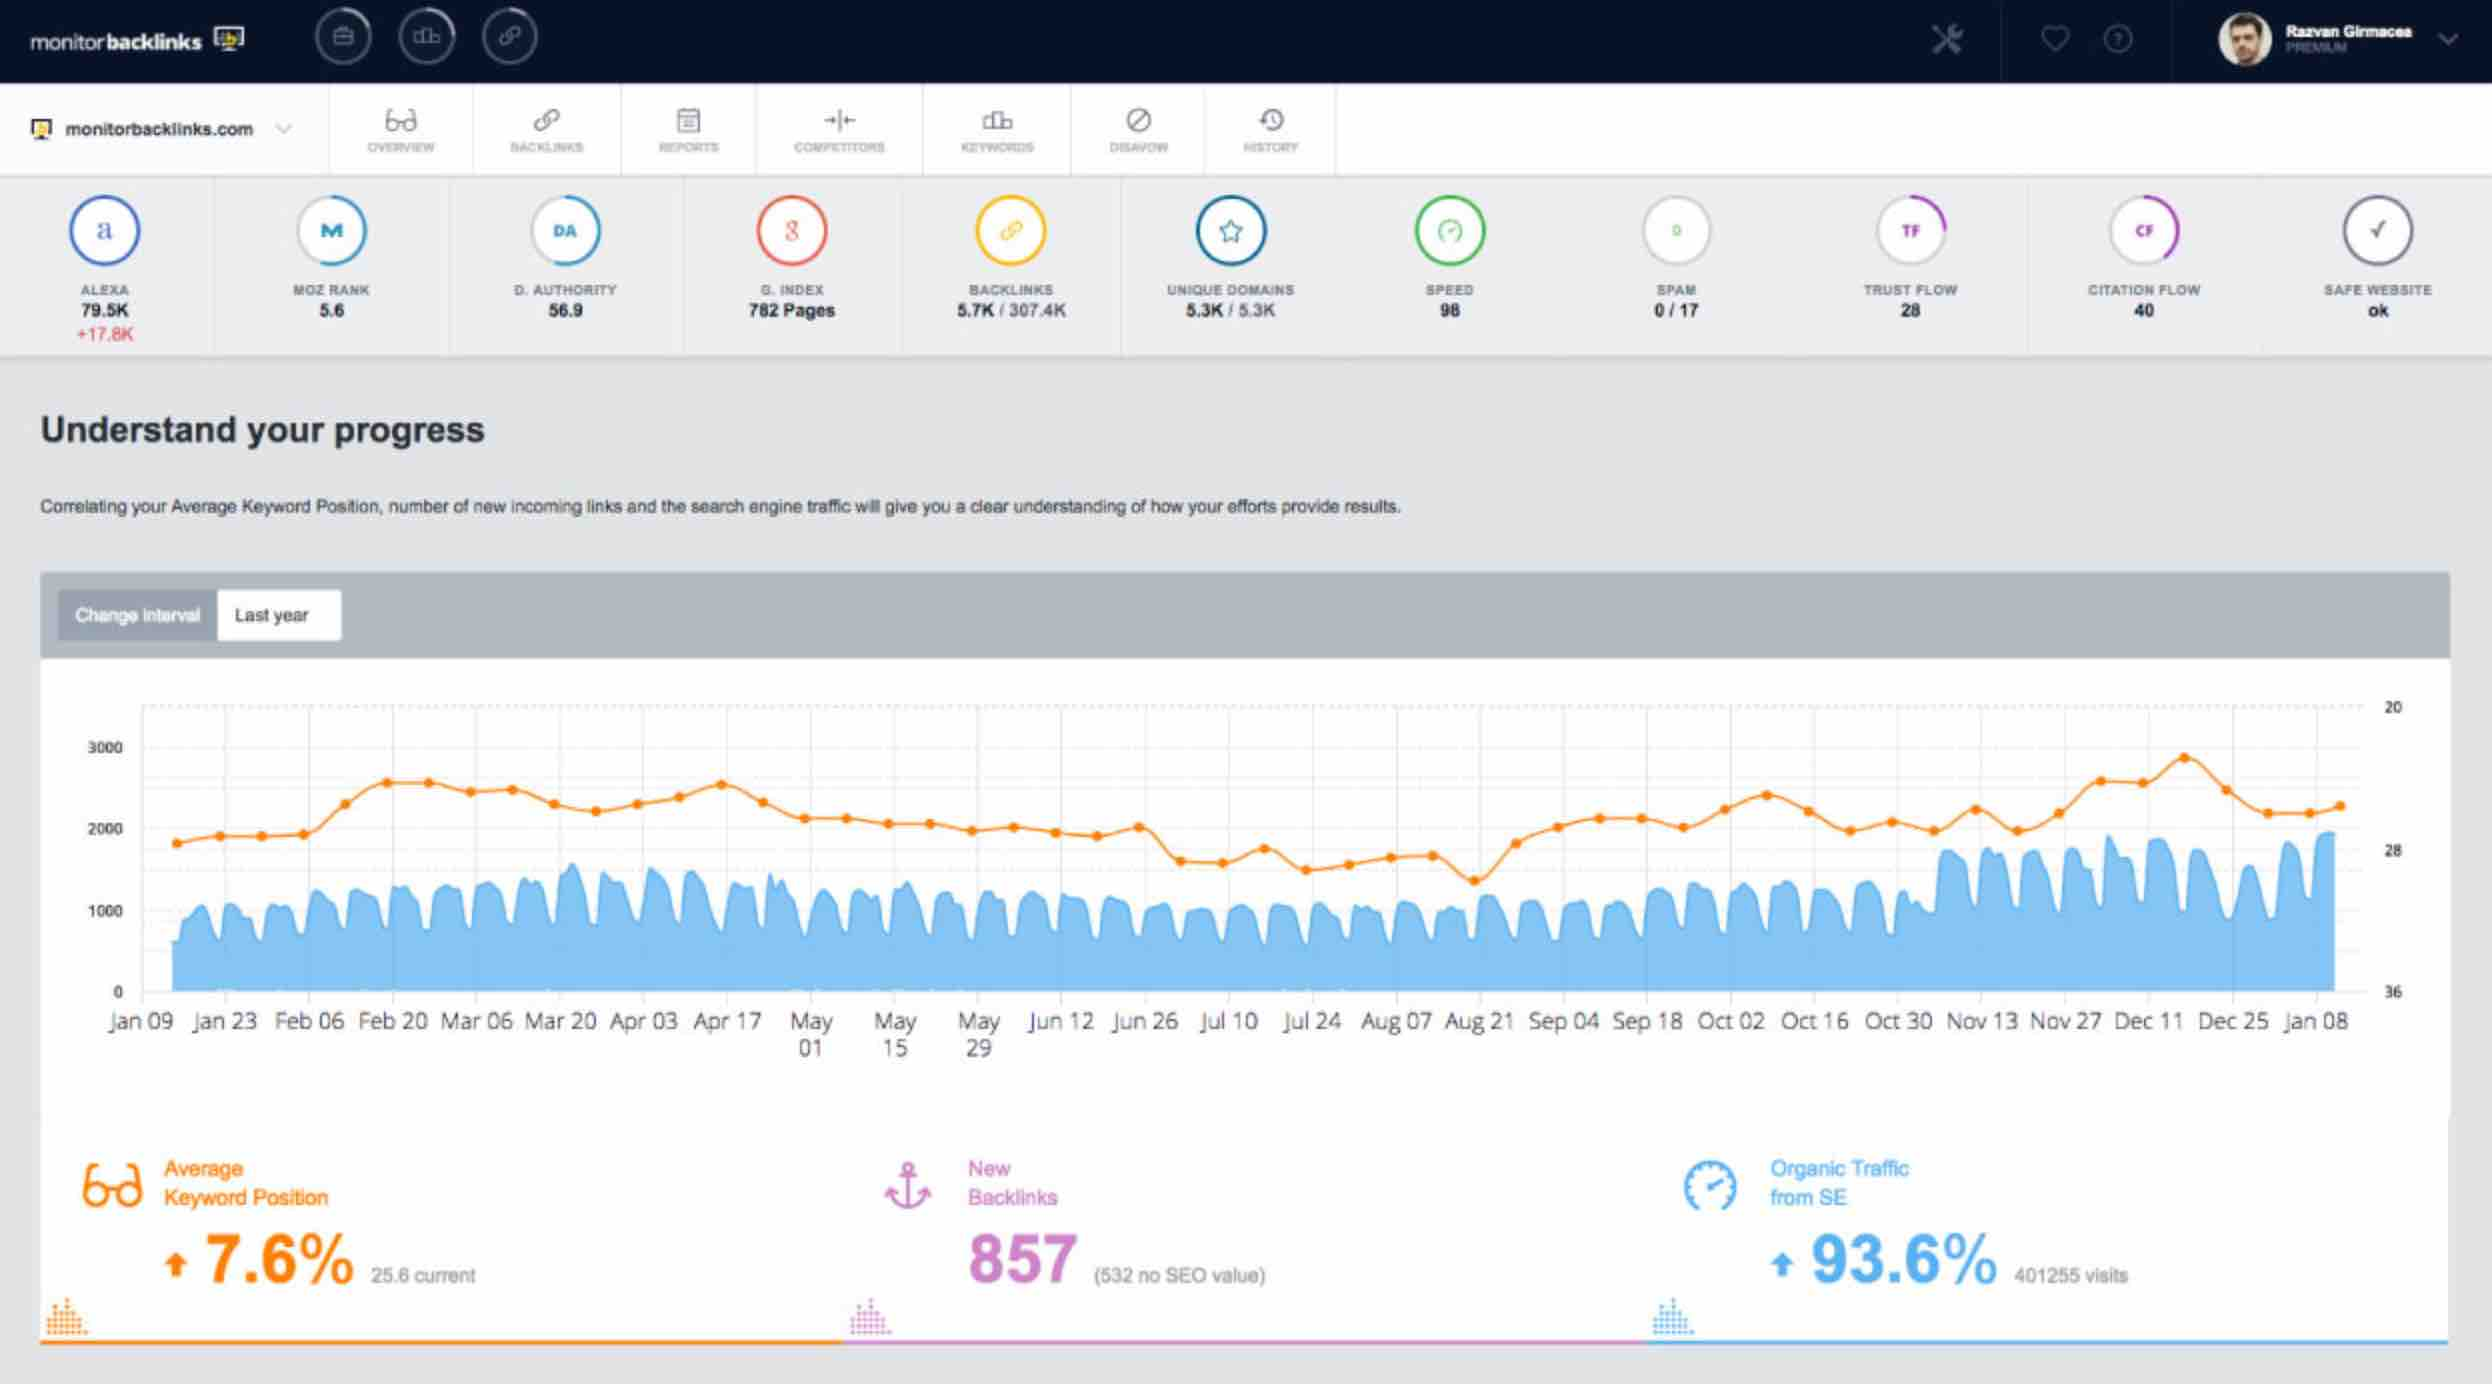 monitoring tool for backlinks and keywords